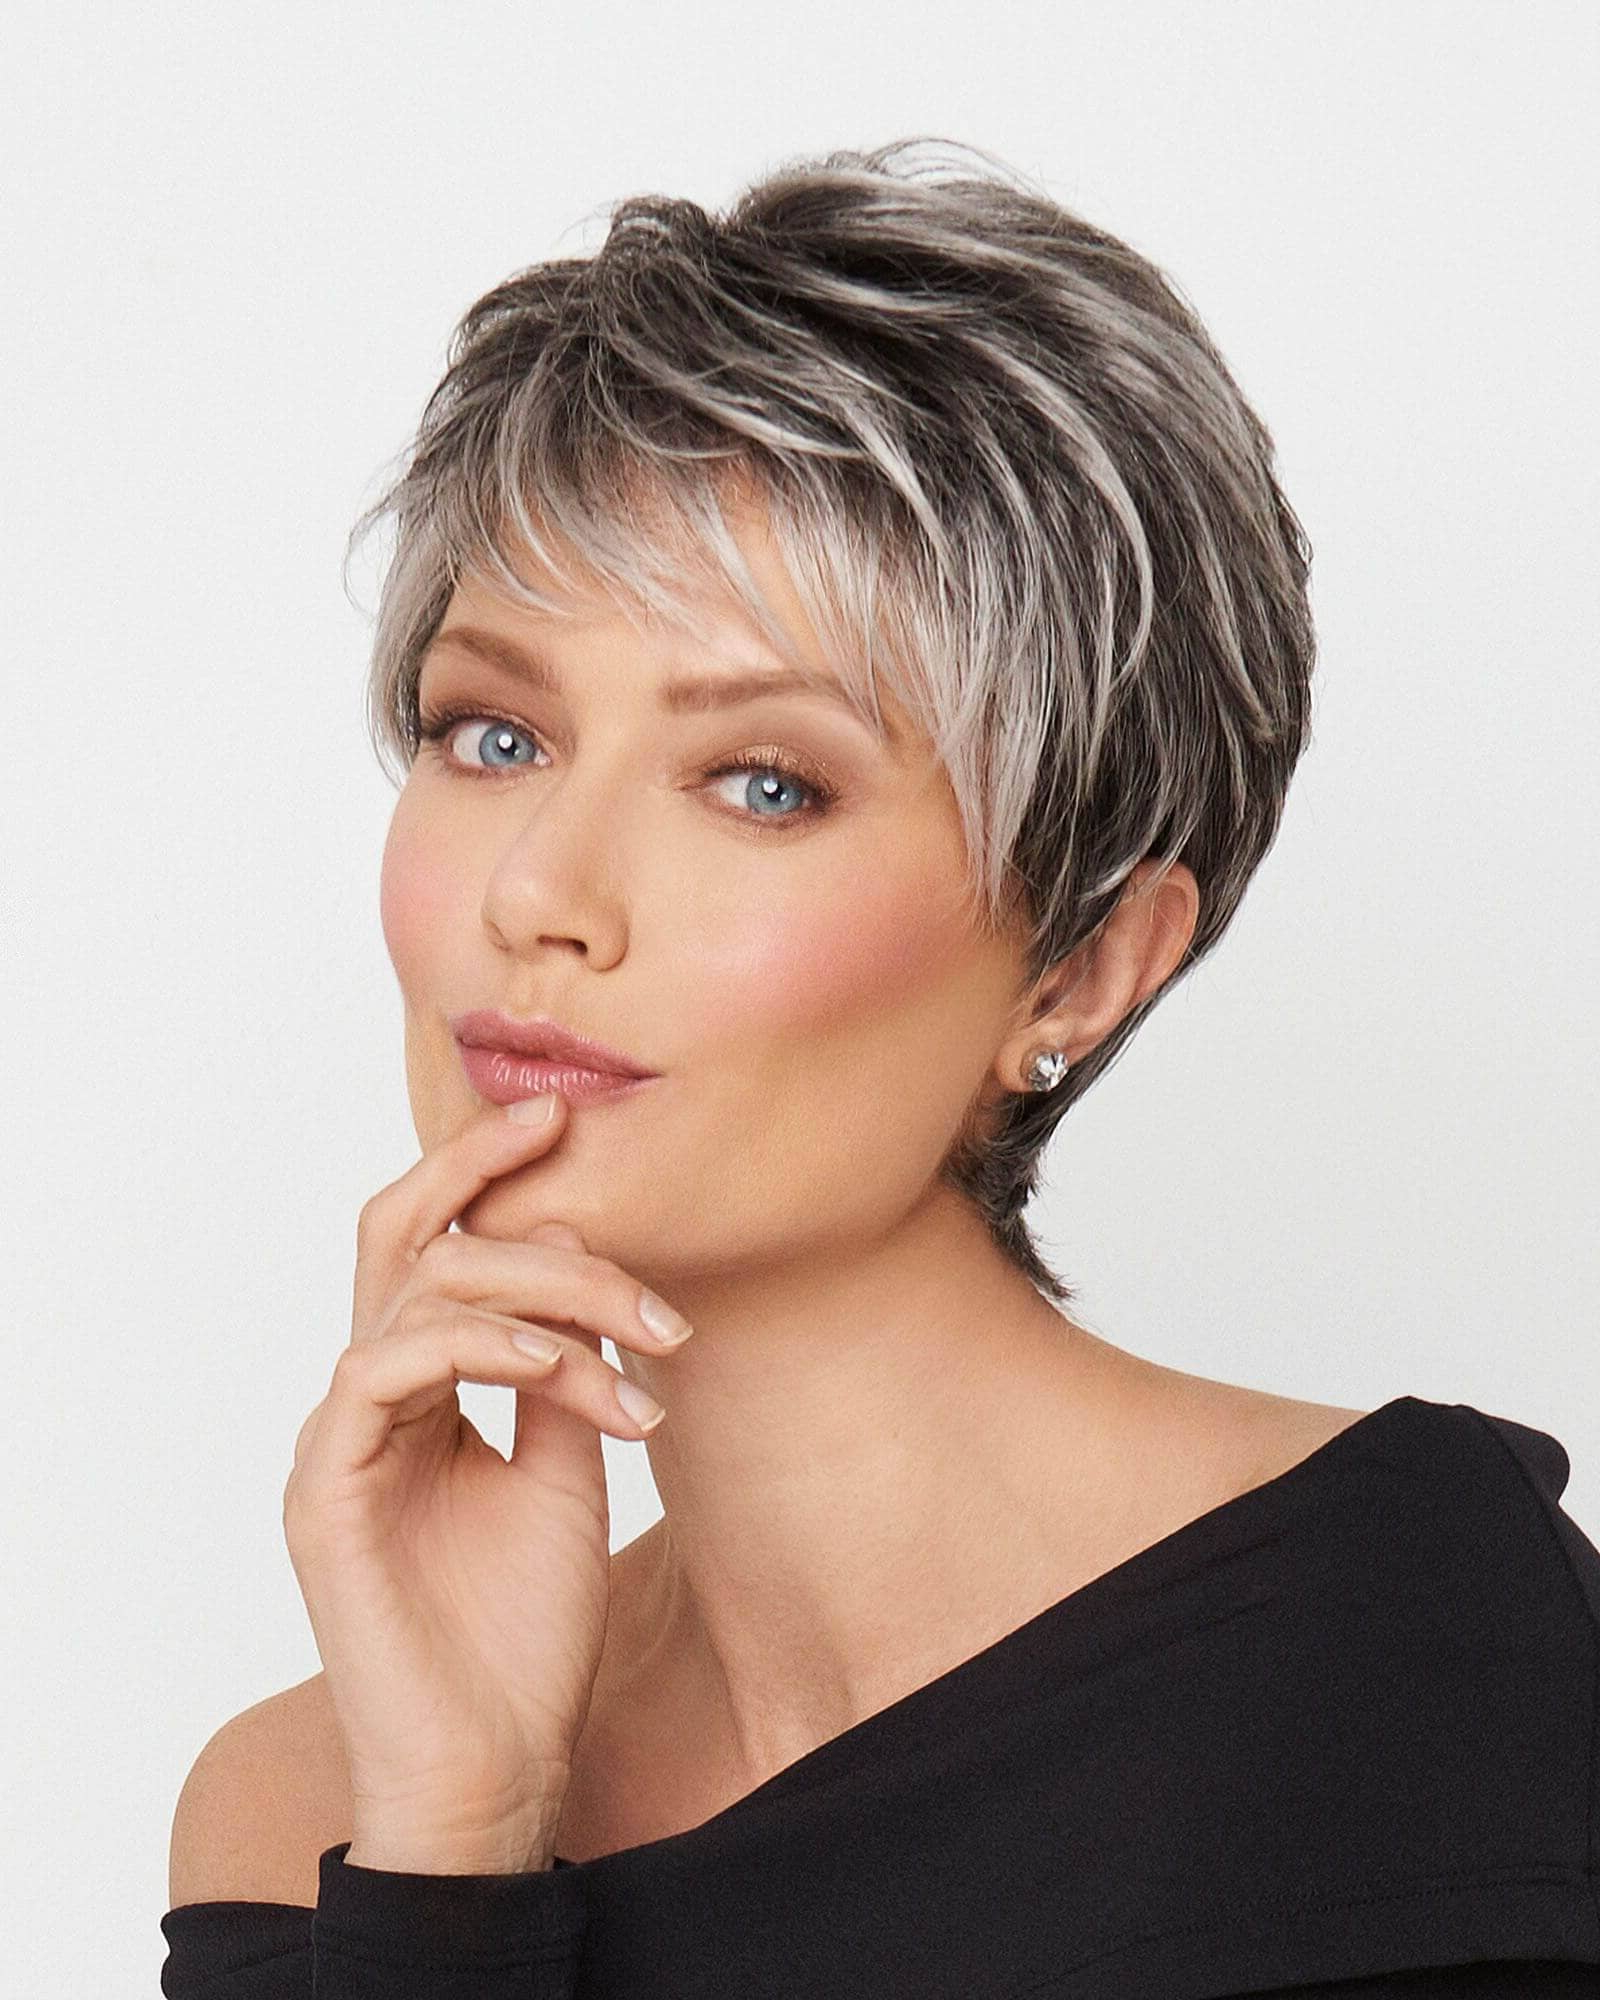 50 Pixie Haircuts You'll See Trending In 2018 Inside Sweeping Pixie Hairstyles With Undercut (View 13 of 20)